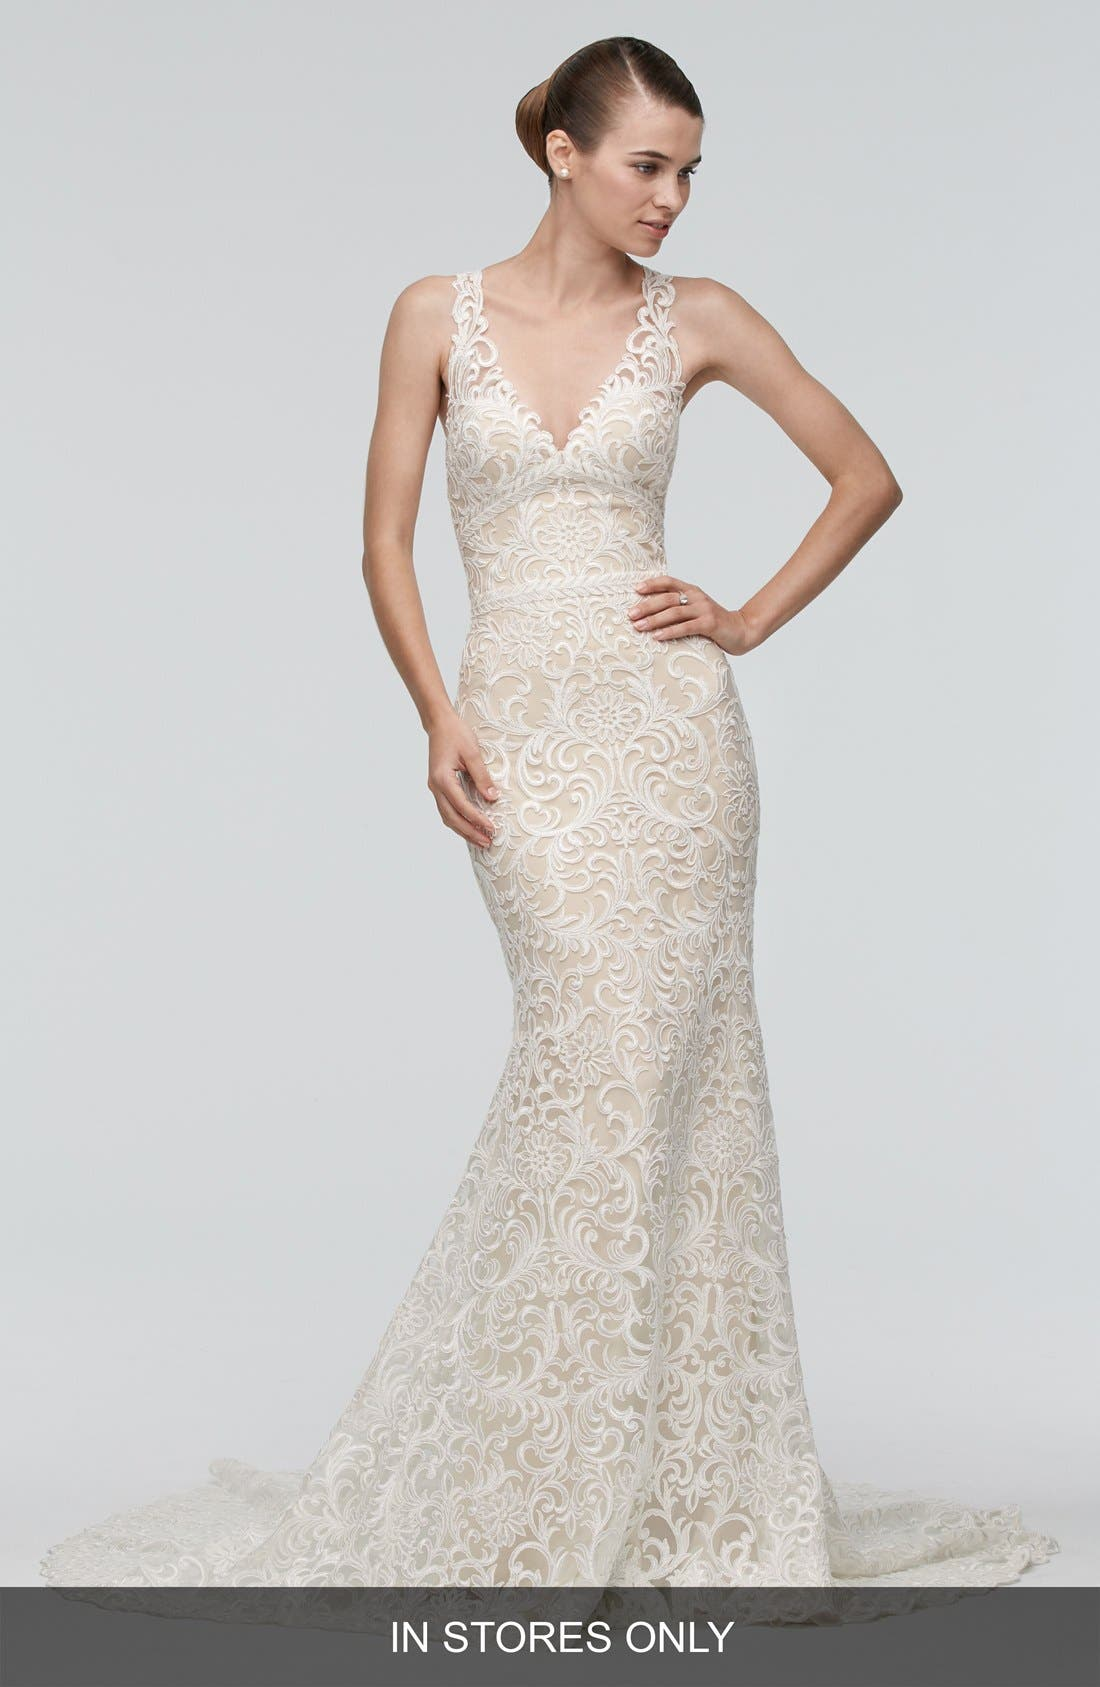 Georgia Back Cutout Lace Trumpet Gown,                             Main thumbnail 1, color,                             IVORY/NUDE